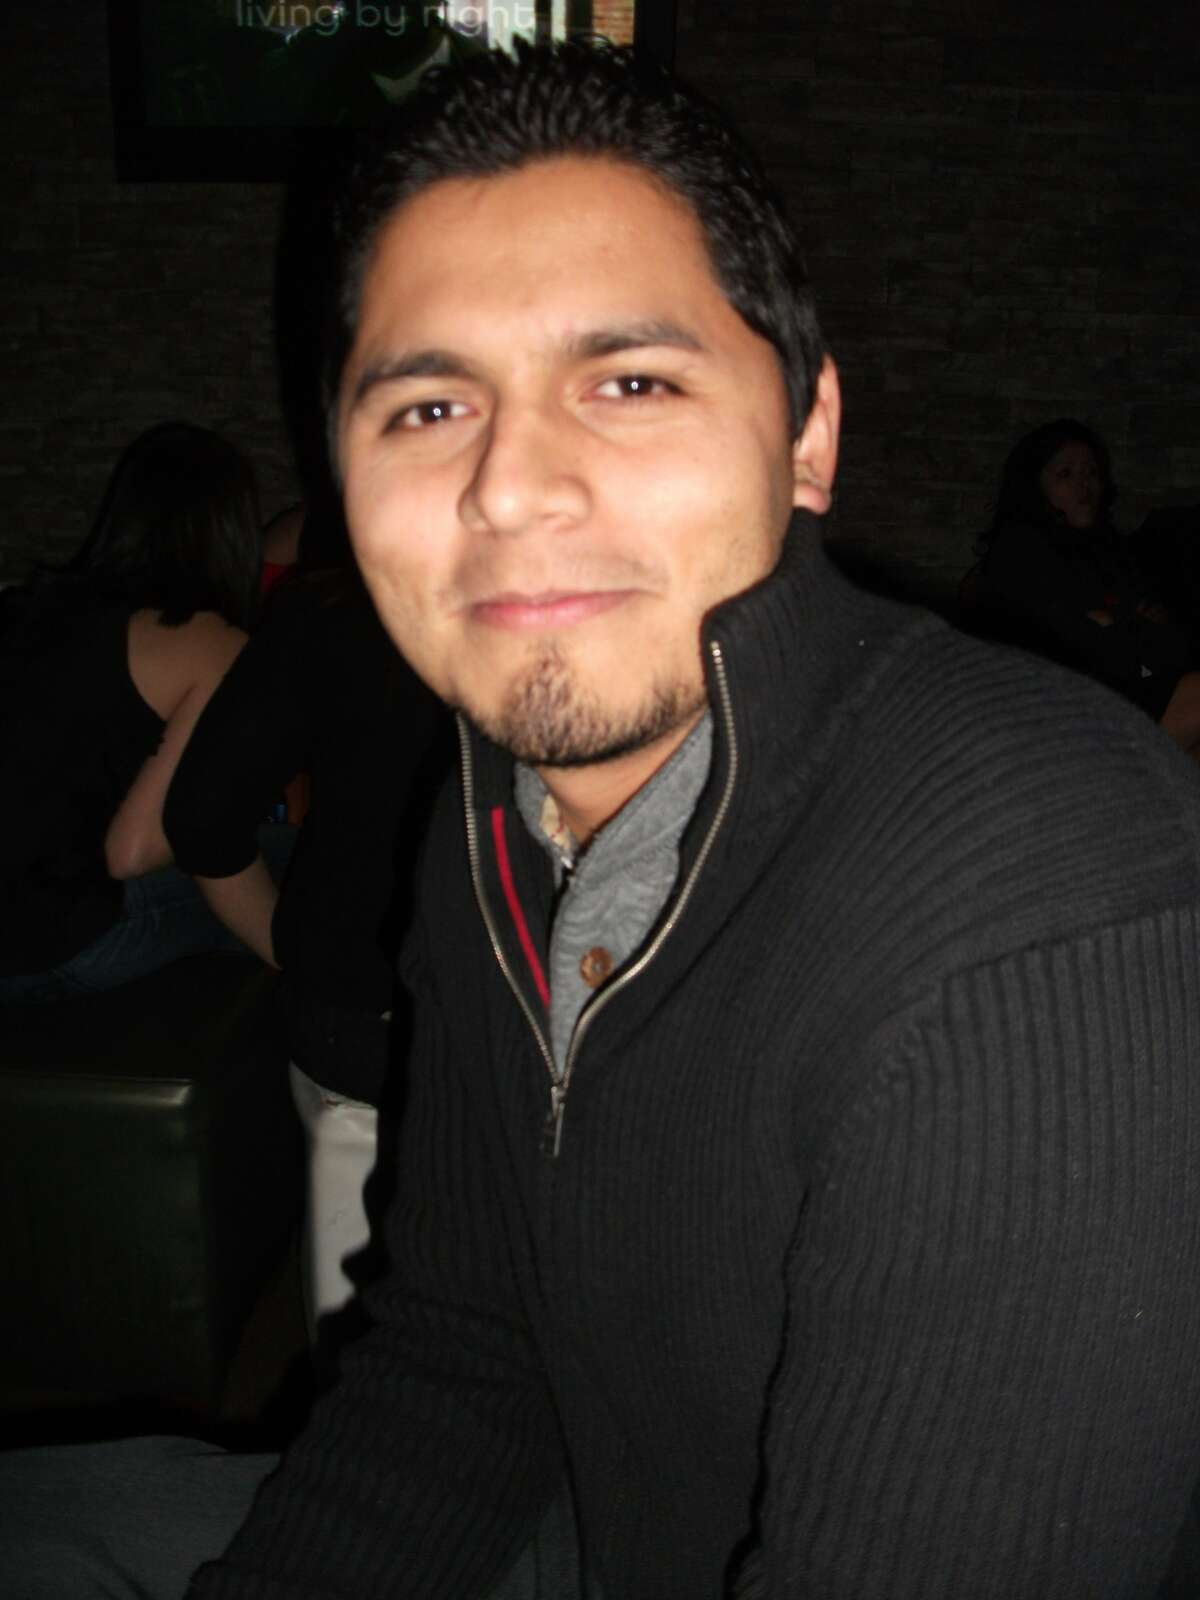 Raul Hernandez died after he was pulled from the pool at Hilton Houston Westchase. (Family photo)